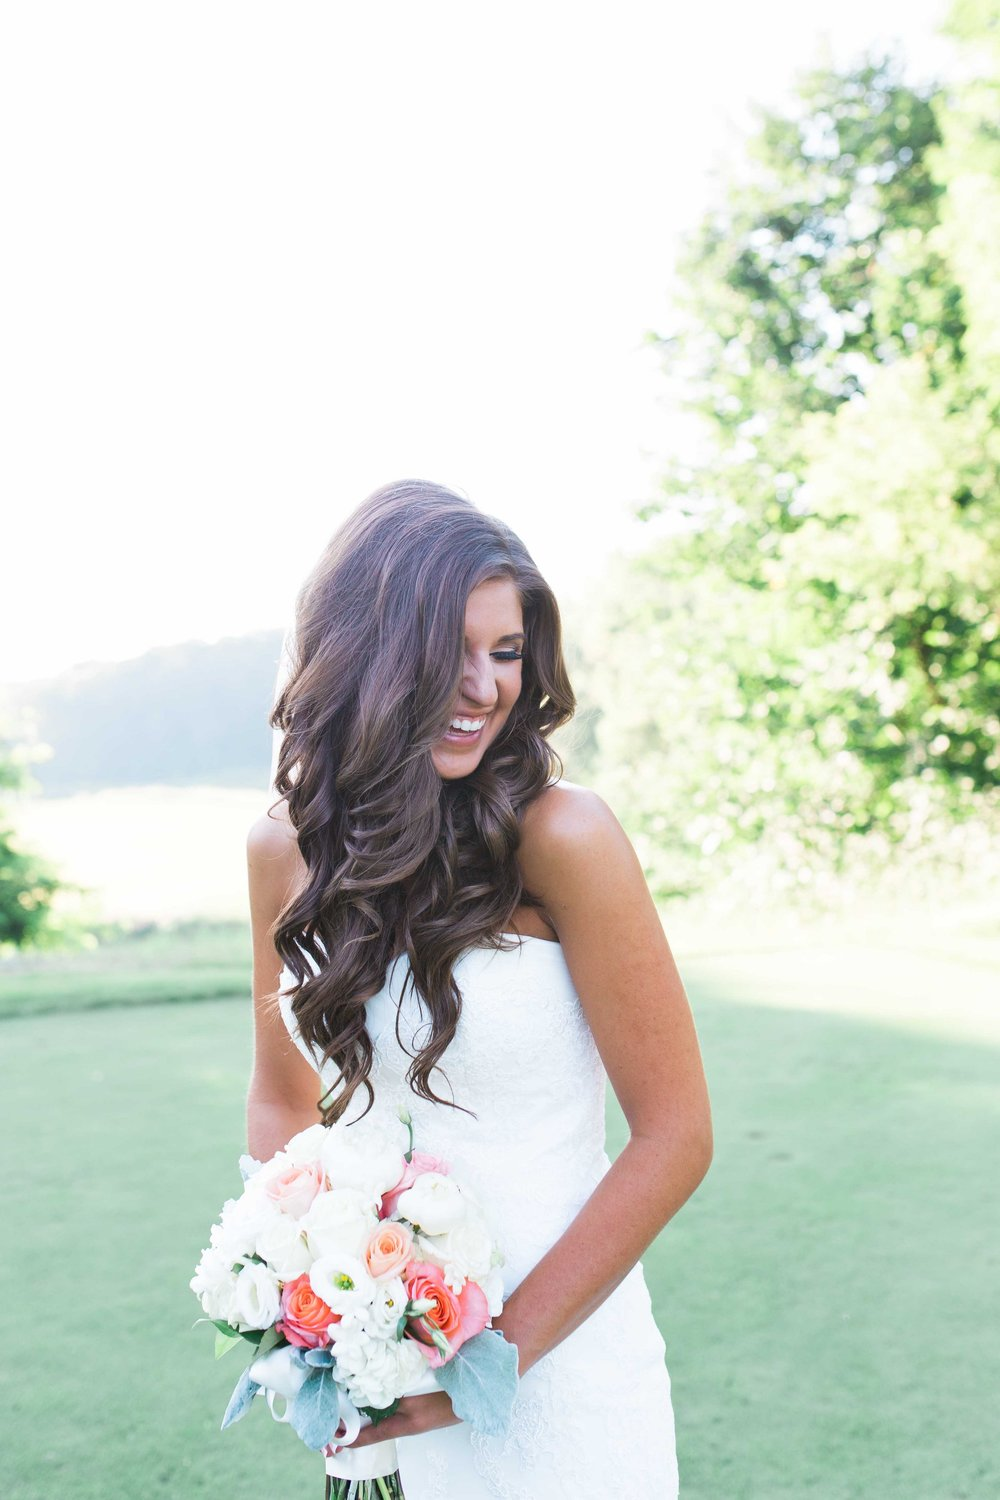 Photo: Lindsey Kay Photography | Bride: Chrissy P.